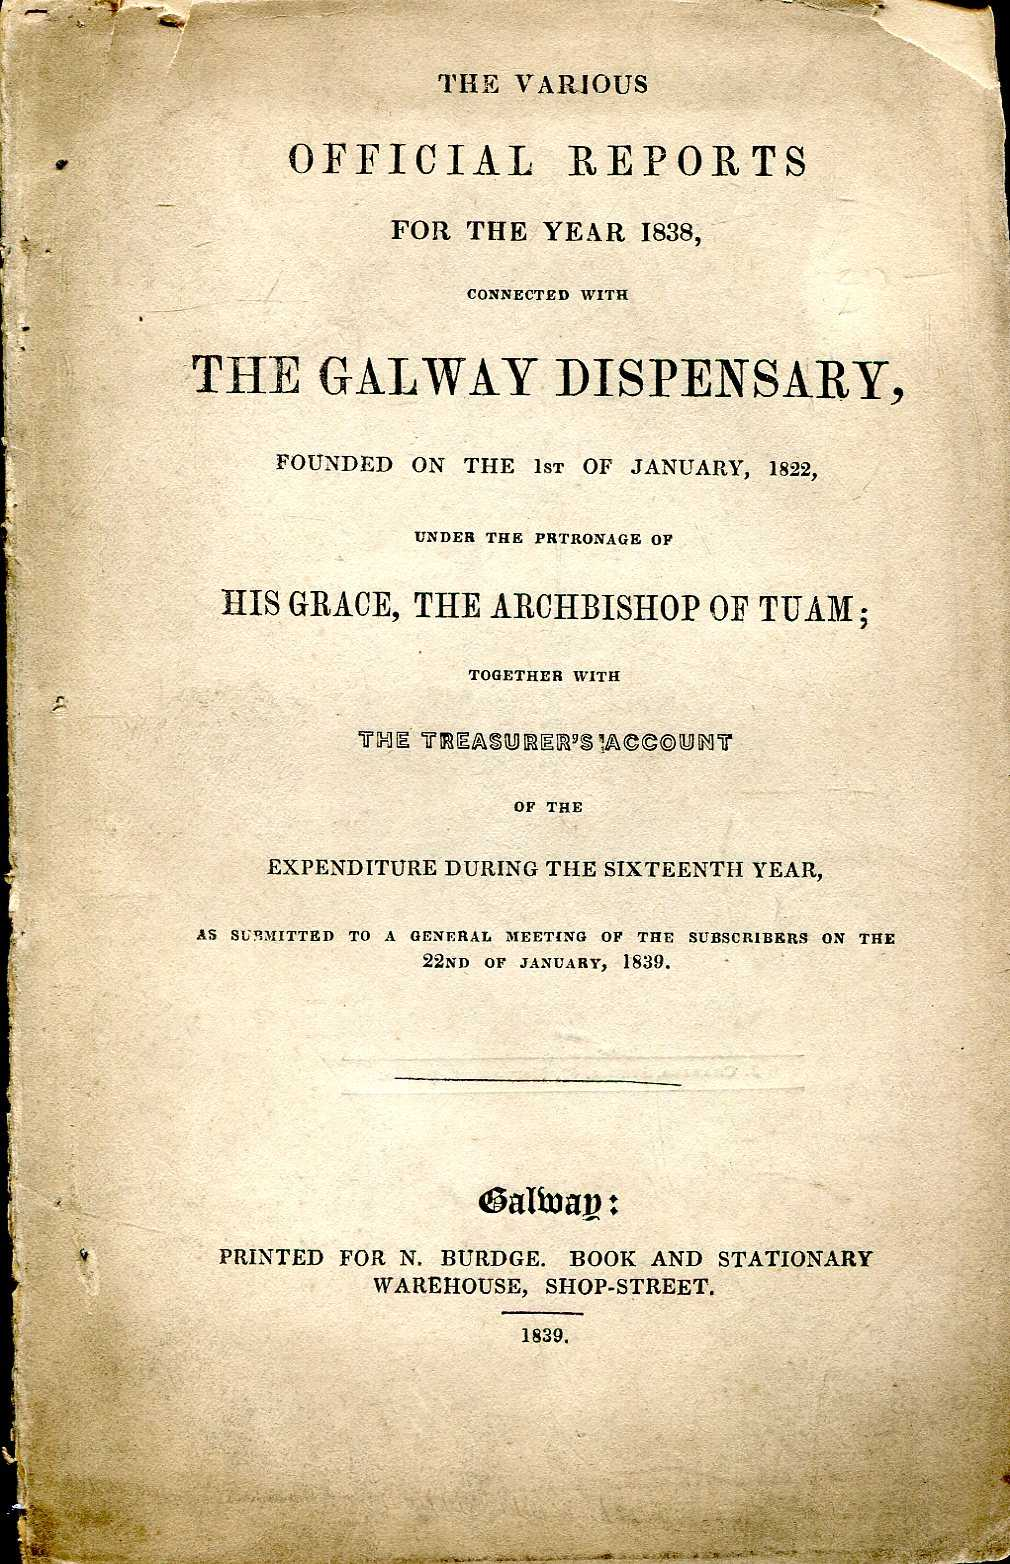 Image for The Various Official Reports for the Year 1838, connected with The Galway Dispensary, founded on the 1st of Jan., 1822